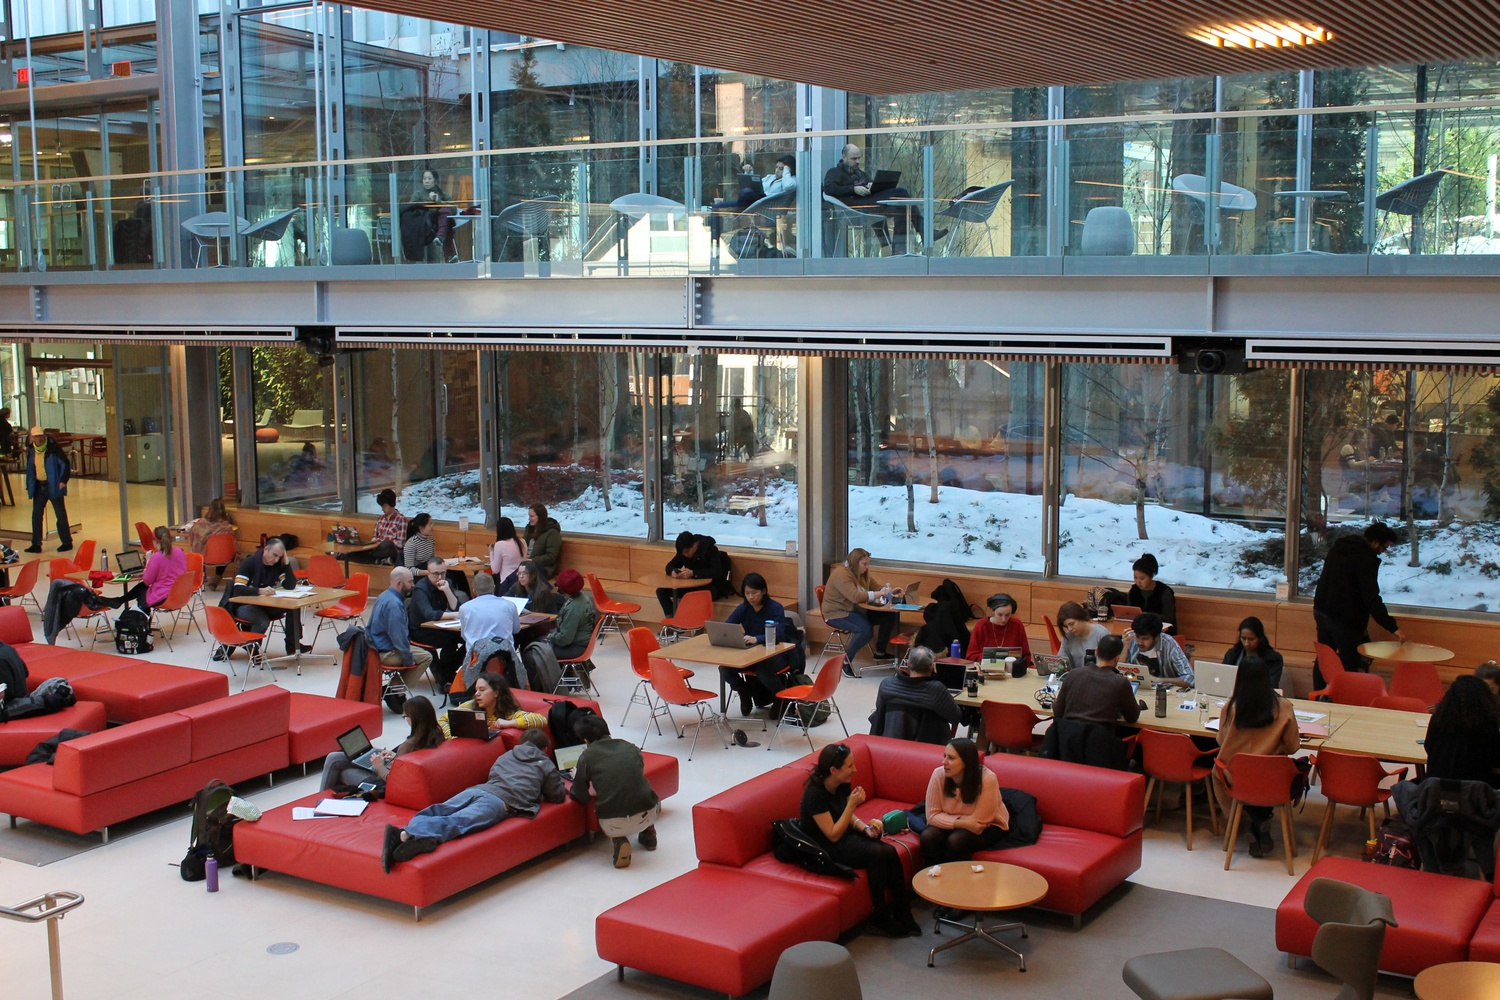 The Smith Campus Center has policies that prohibit individuals from sleeping in its common spaces.